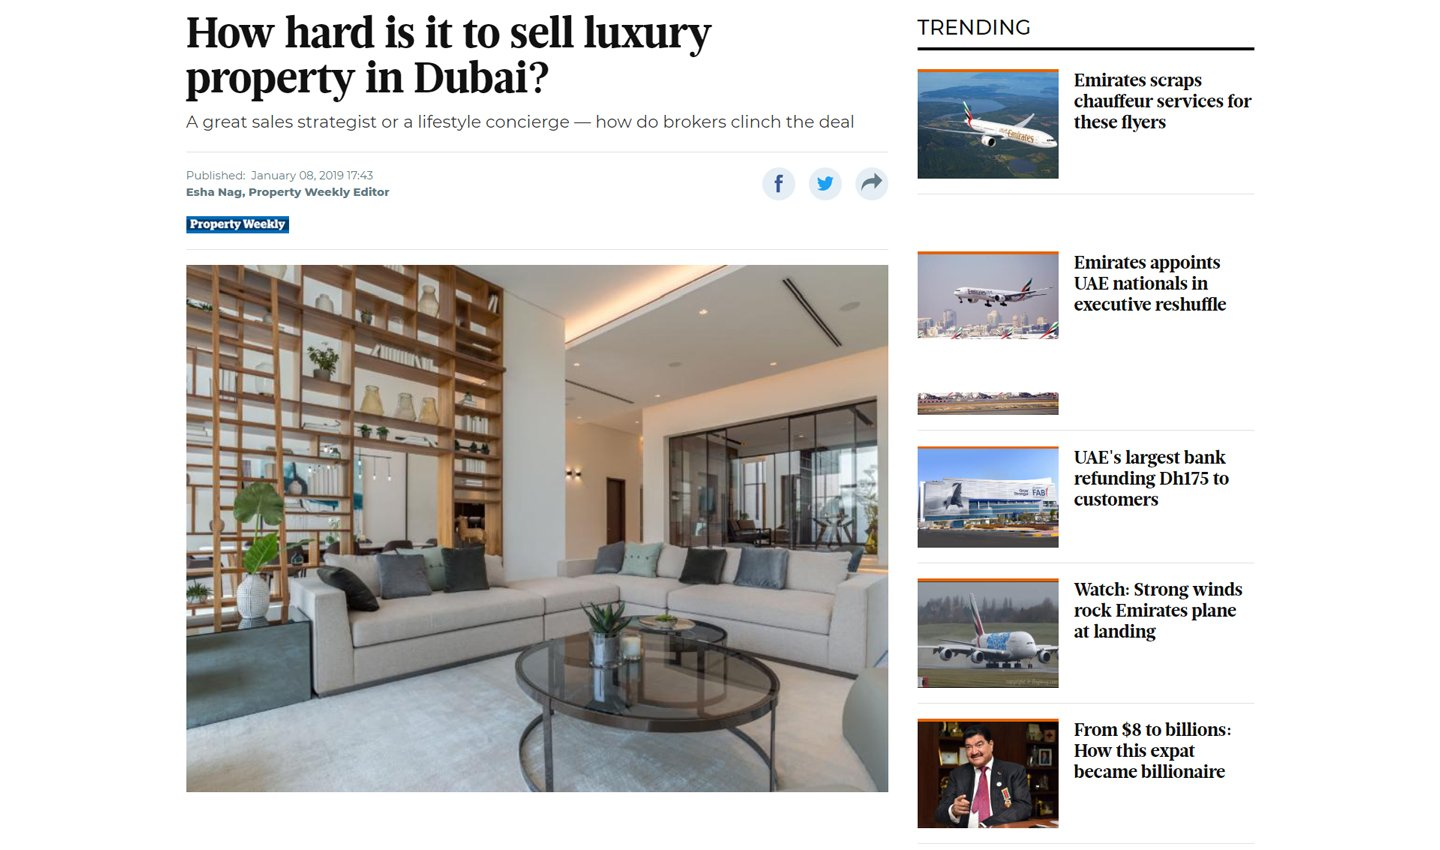 How hard is it to sell luxury property in Dubai?